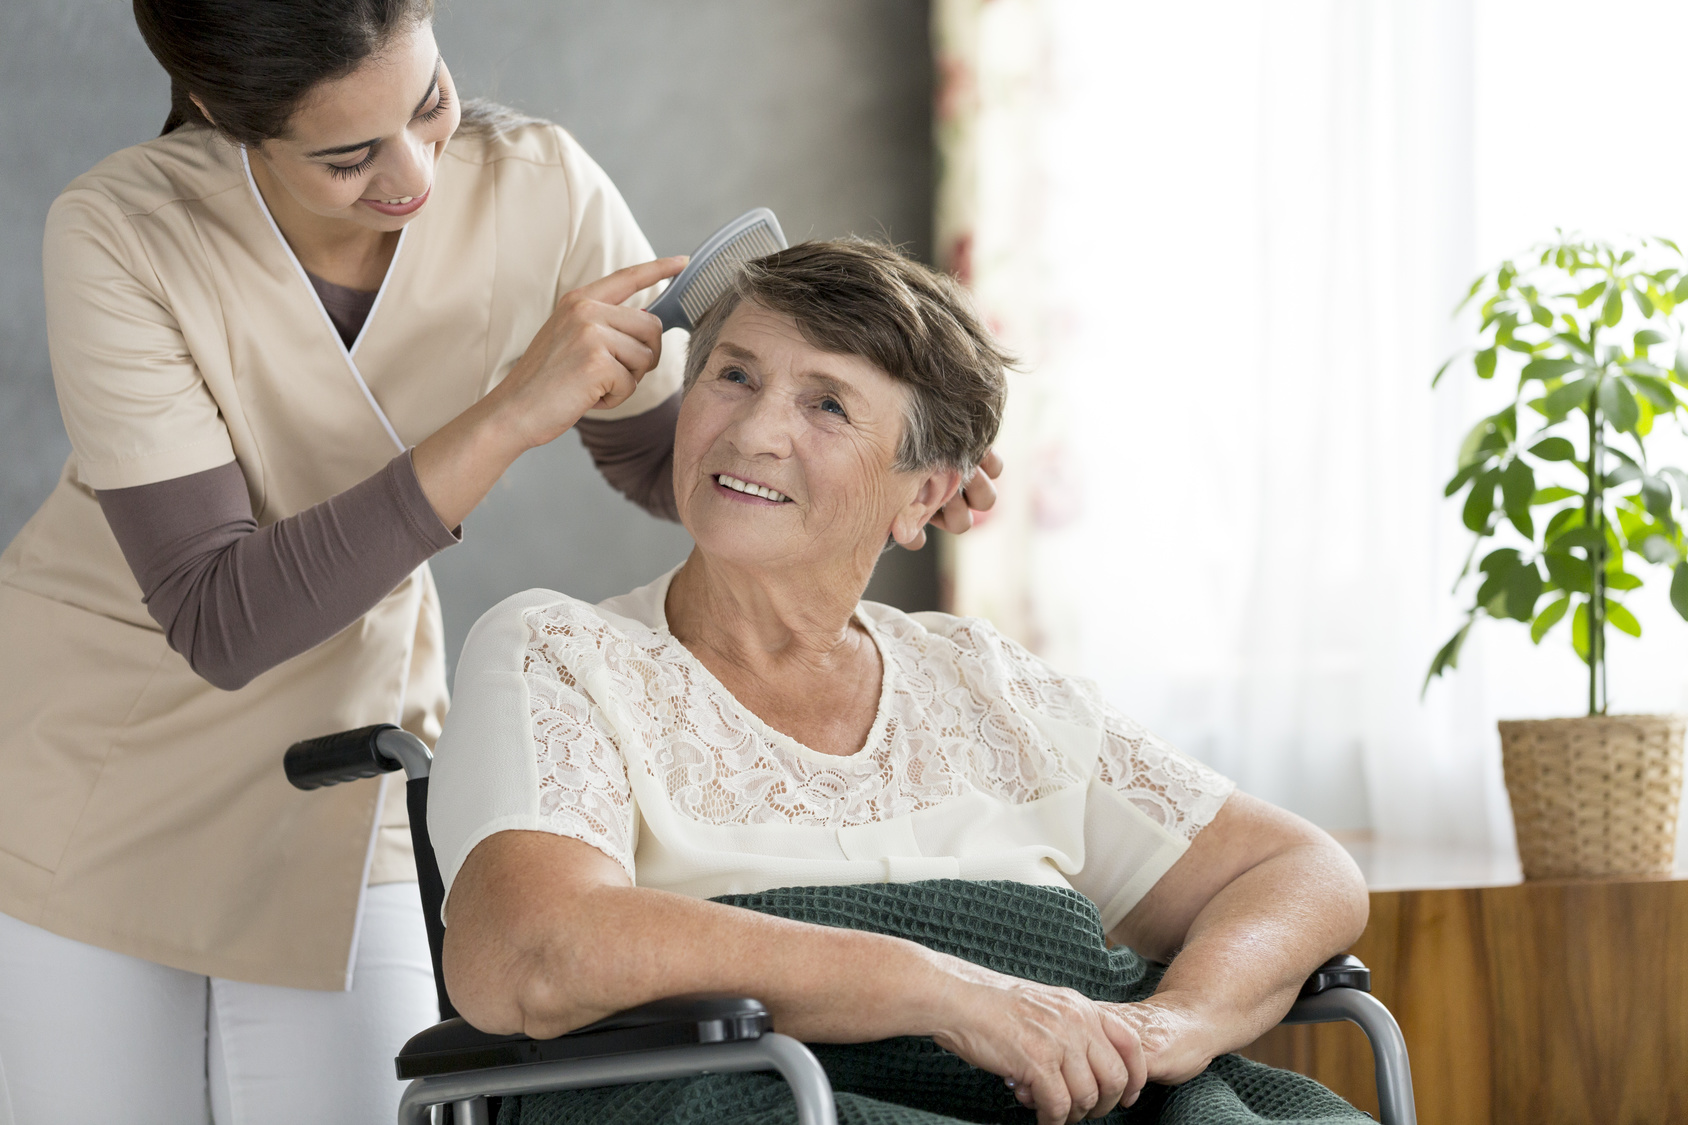 Care plan for dementia patient at home